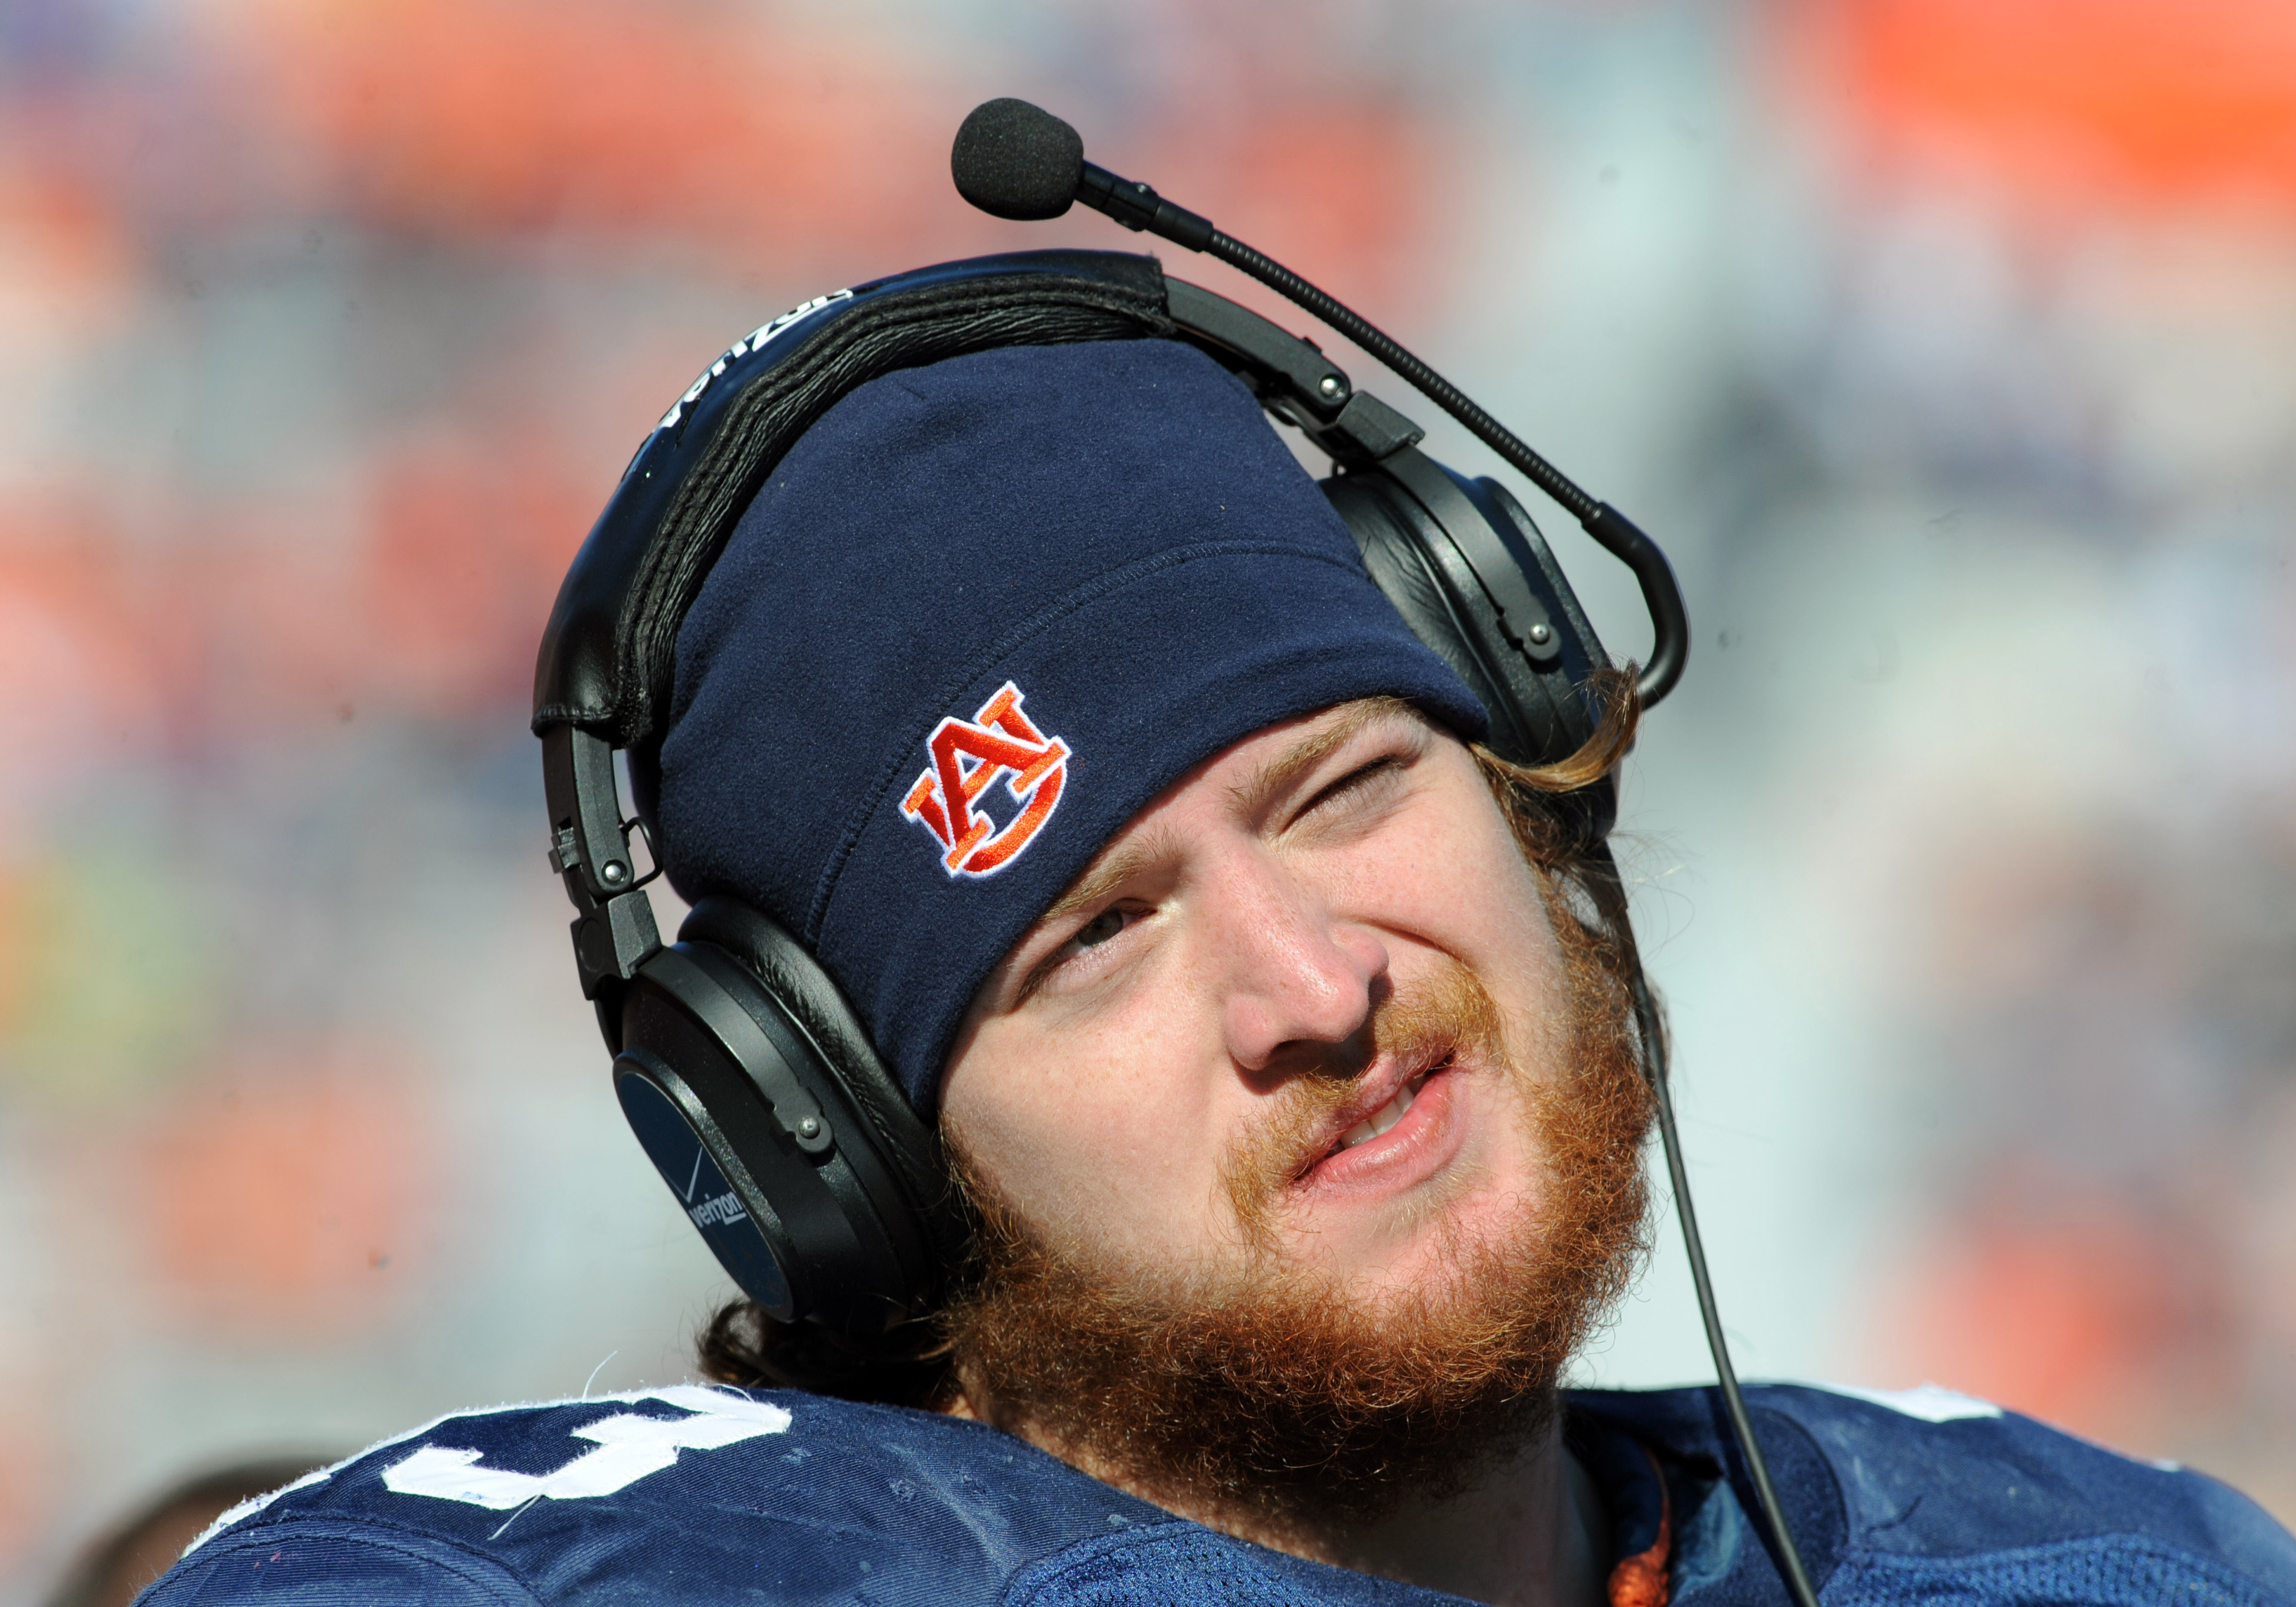 AUBURN, AL - NOVEMBER 6:  Offensive lineman Lee Ziemba #73 of the Auburn Tigers checks the scoreboard during play against the Chattanooga Mocs November 6, 2010 at Jordan-Hare Stadium in Auburn, Alabama.  (Photo by Al Messerschmidt/Getty Images)